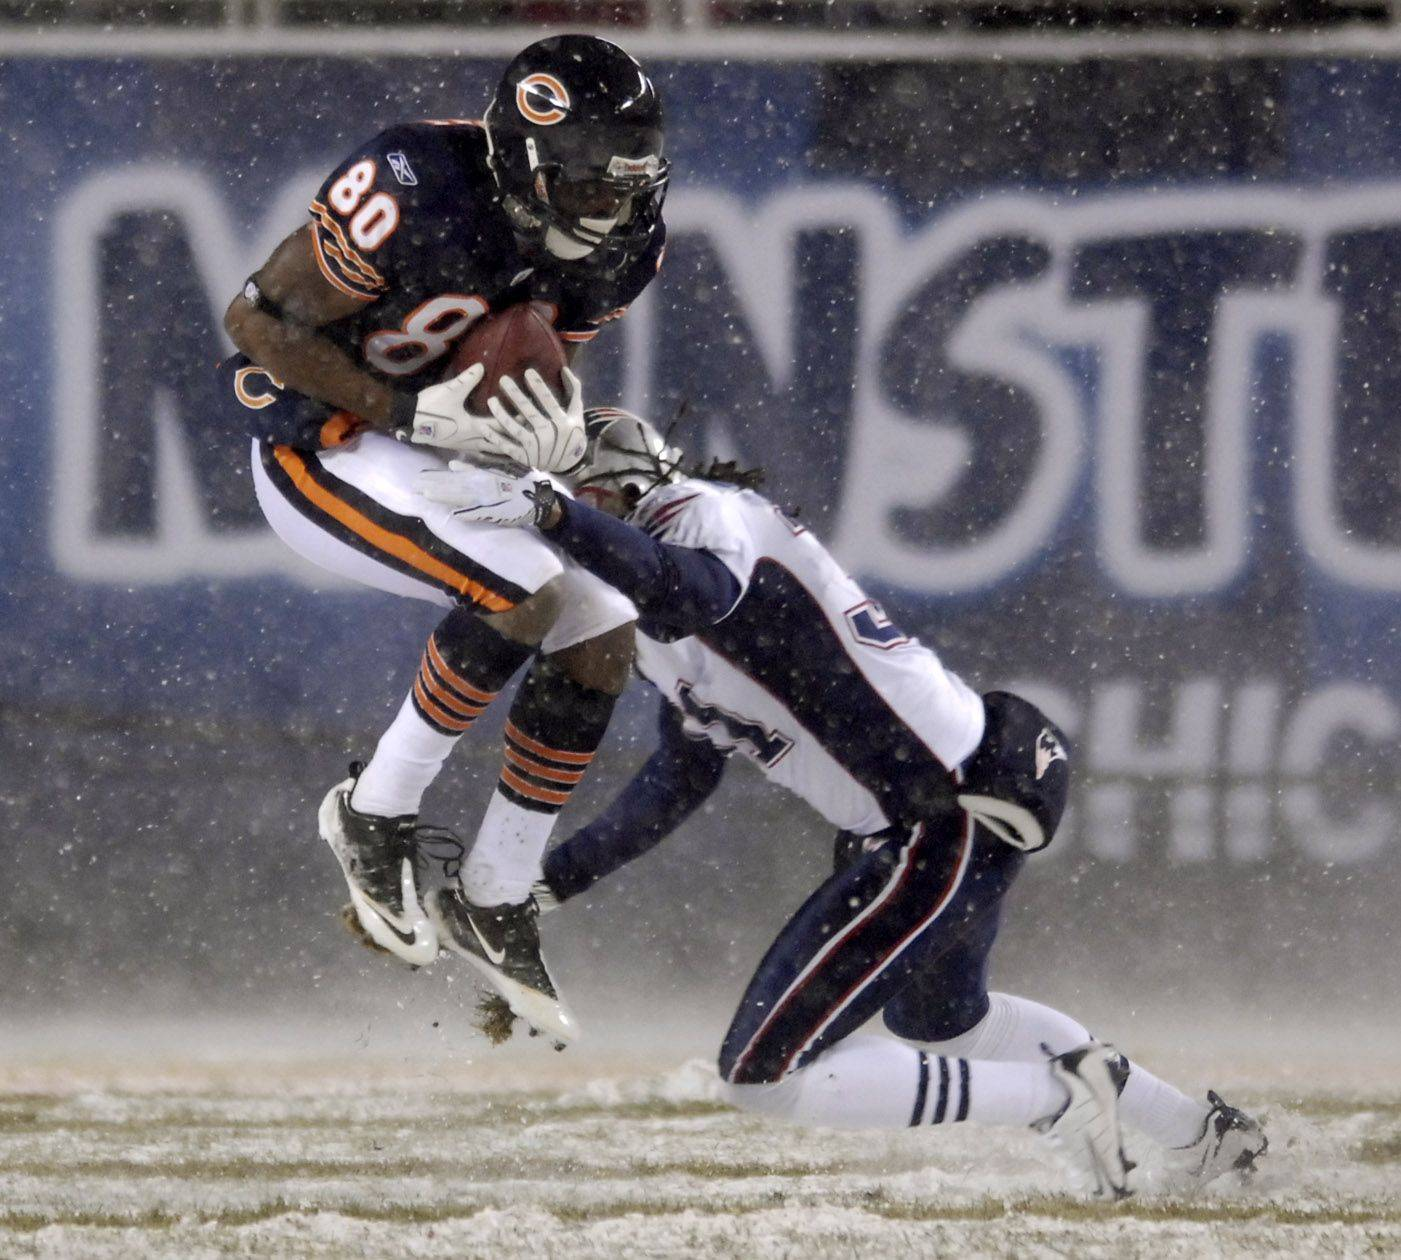 Chicago Bears wide receiver Earl Bennett hauls in a long fourth quarter reception in front of New England Patriots safety Brandon Meriweather.